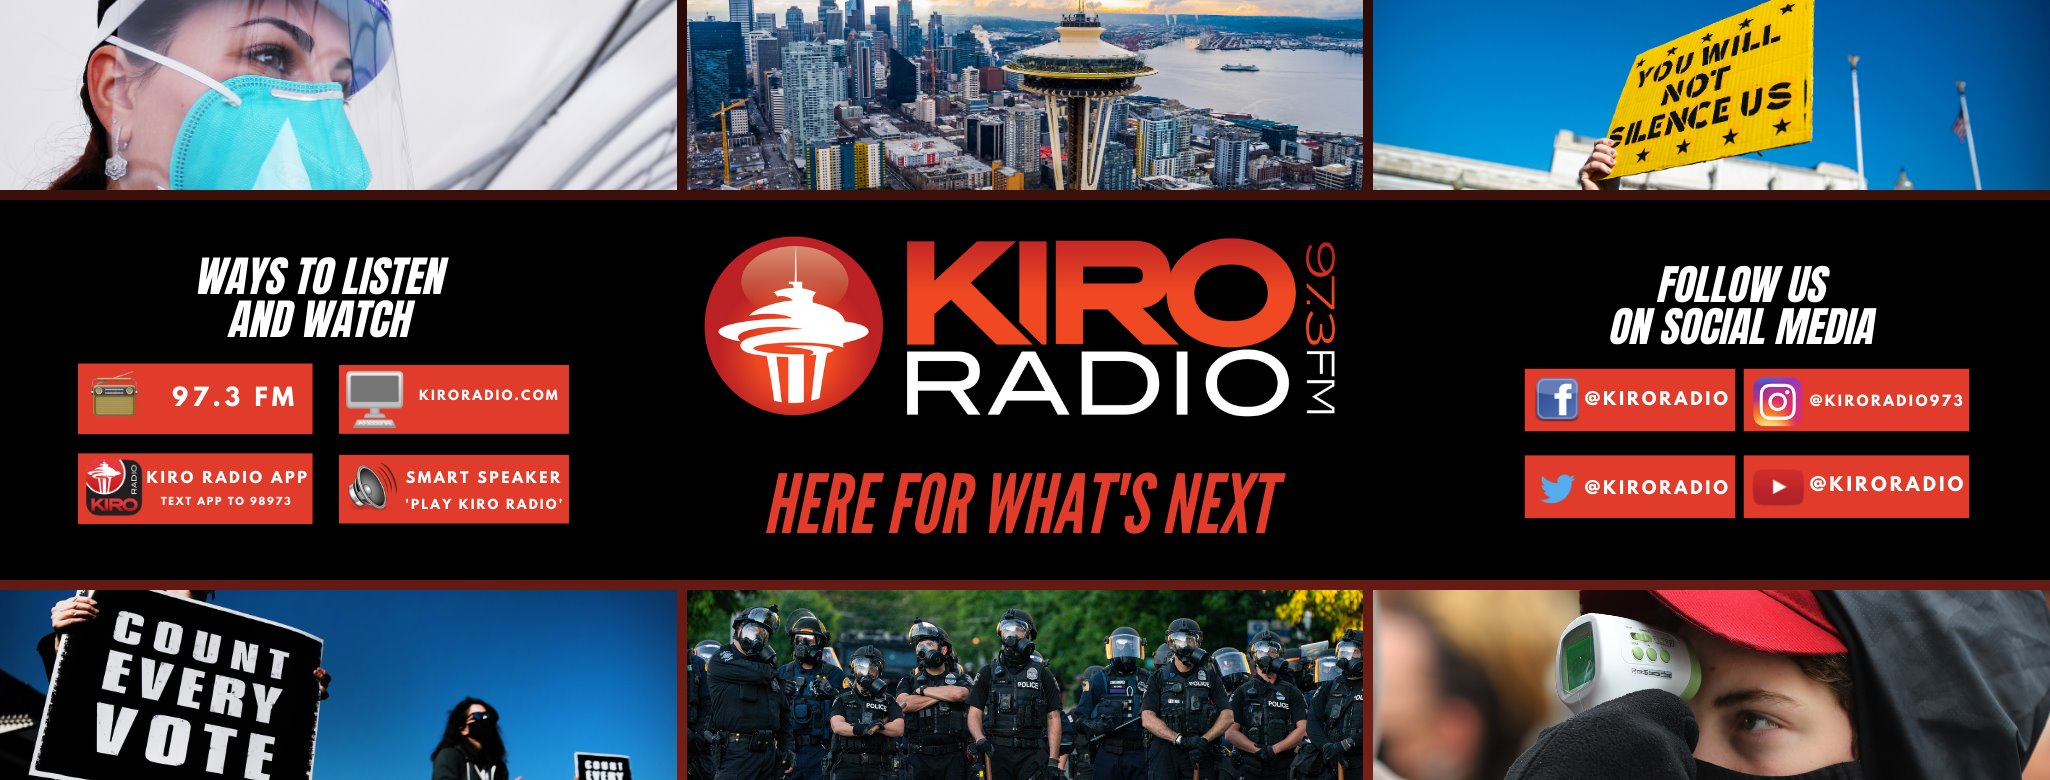 KIRO Radio here for what is next